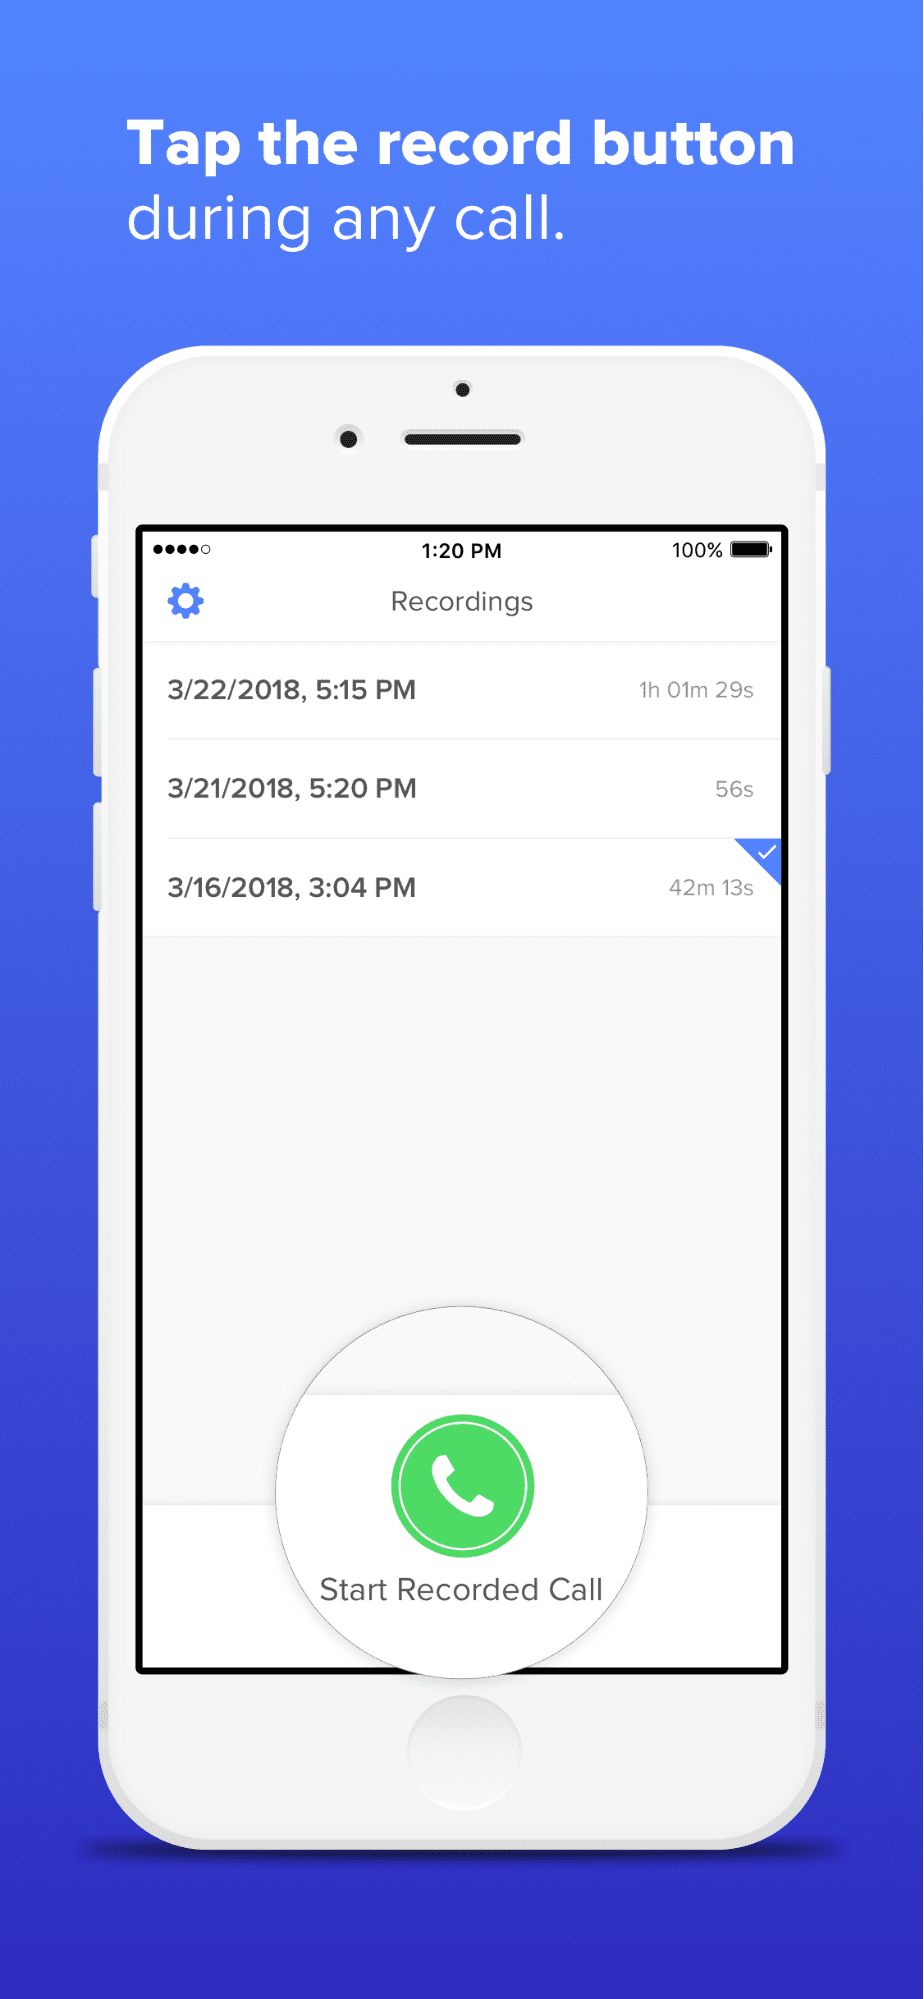 Tap the record button to record any call